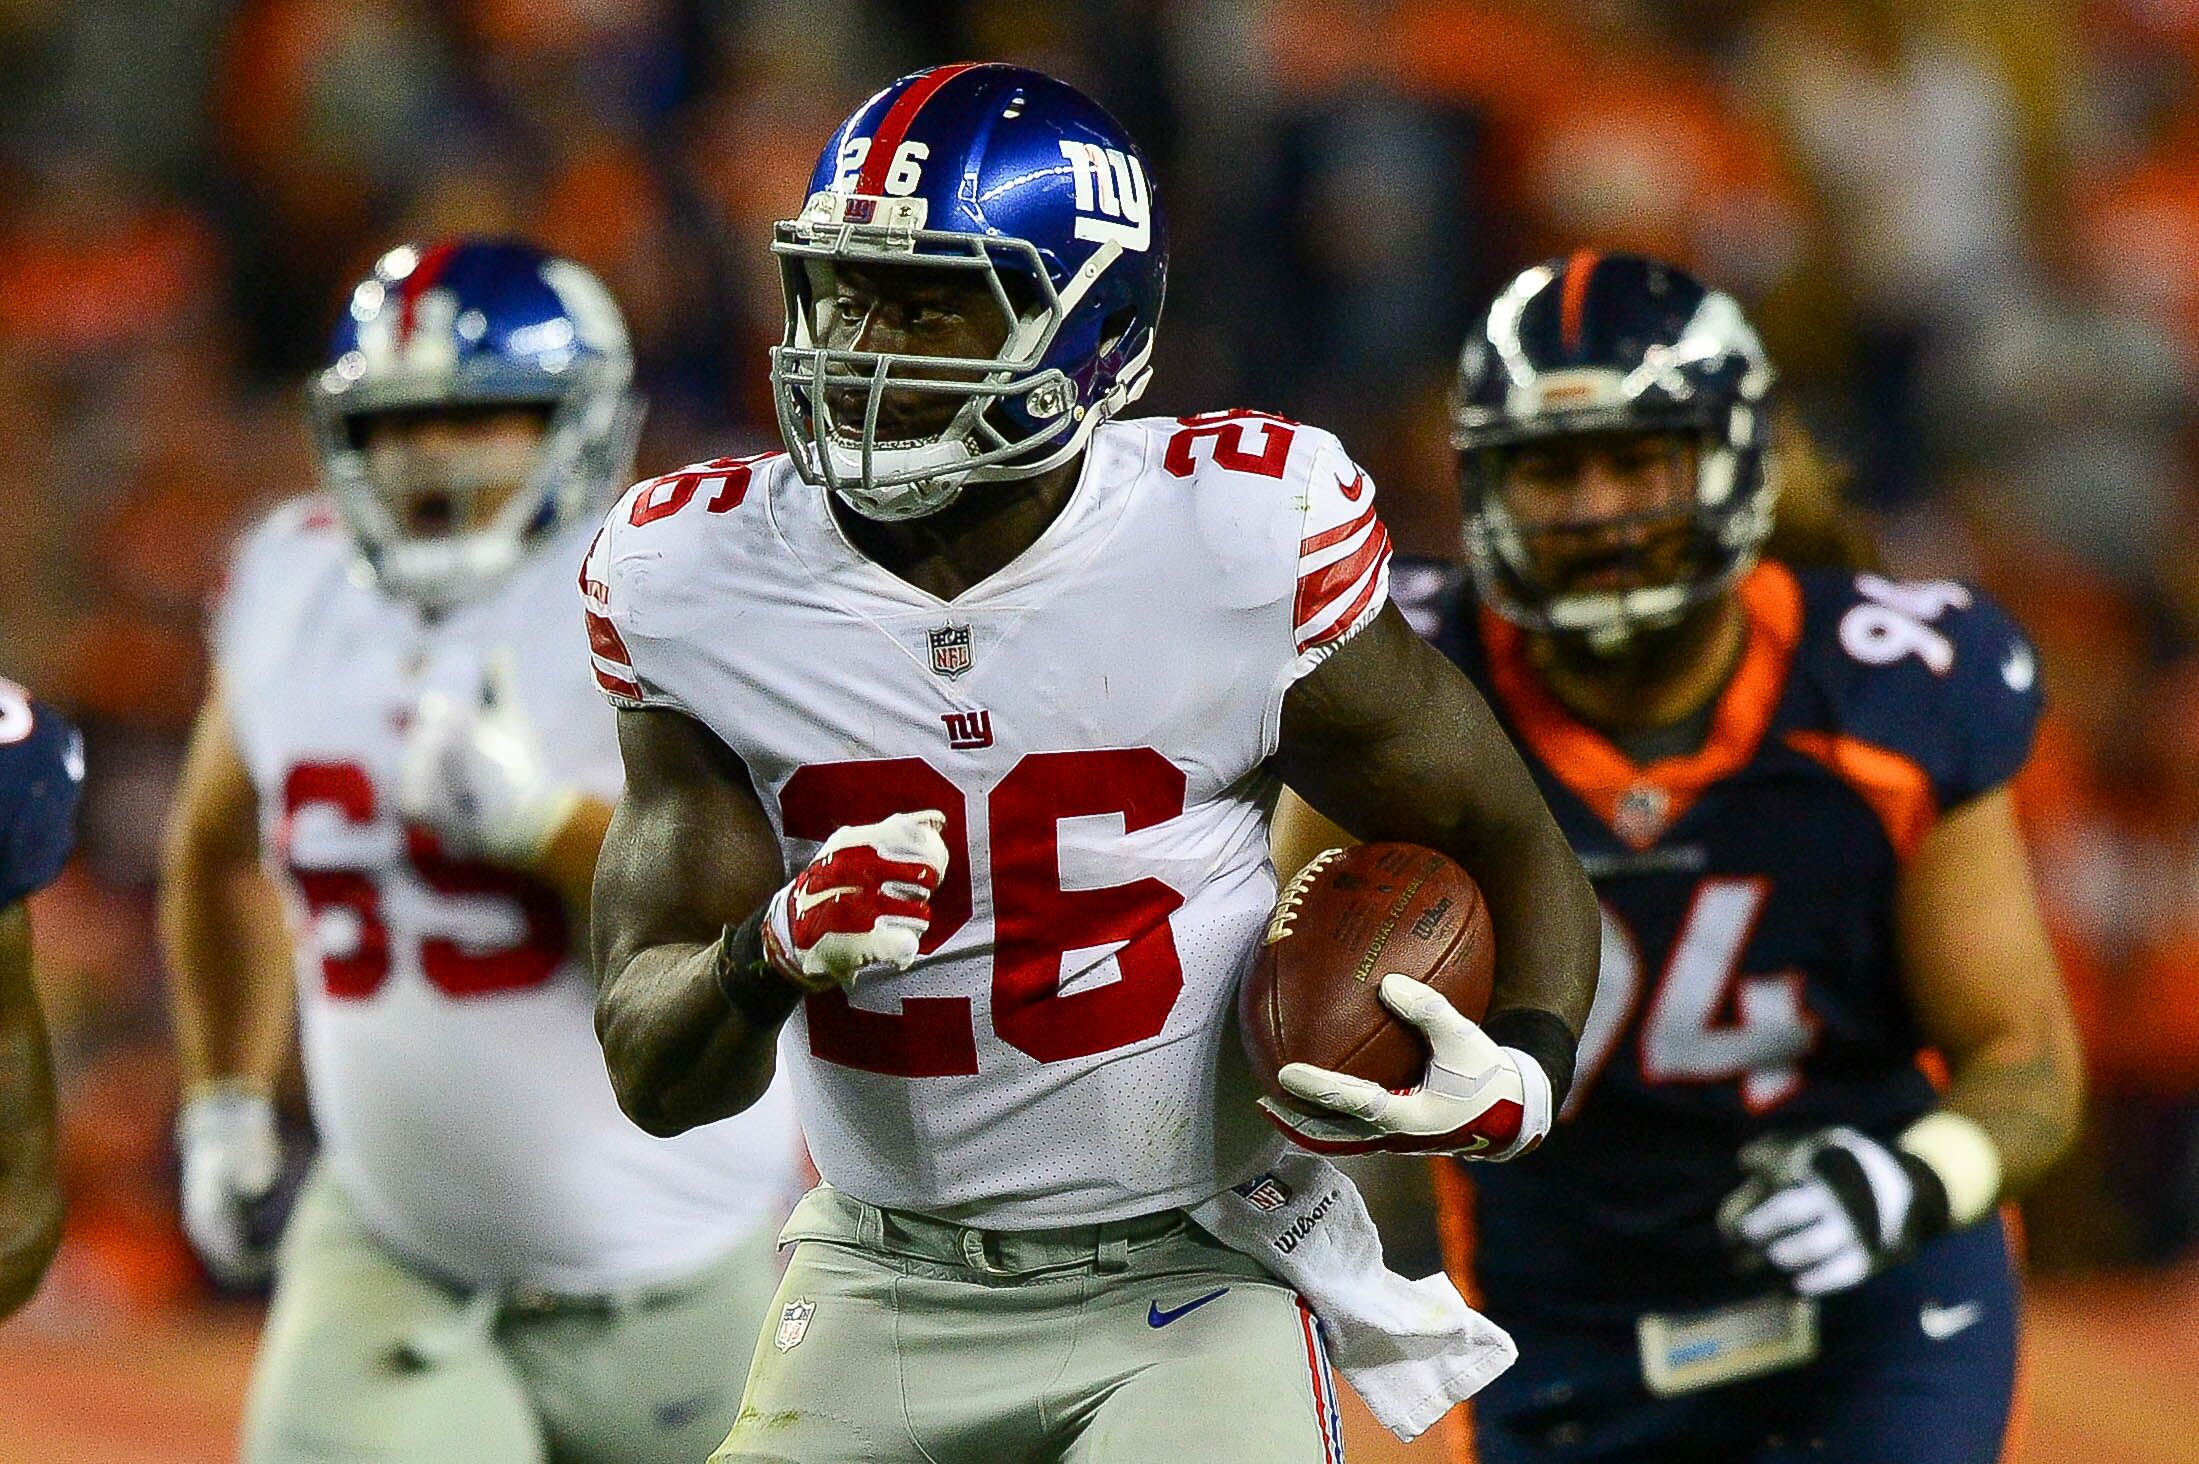 861770784-new-york-giants-v-denver-broncos.jpg